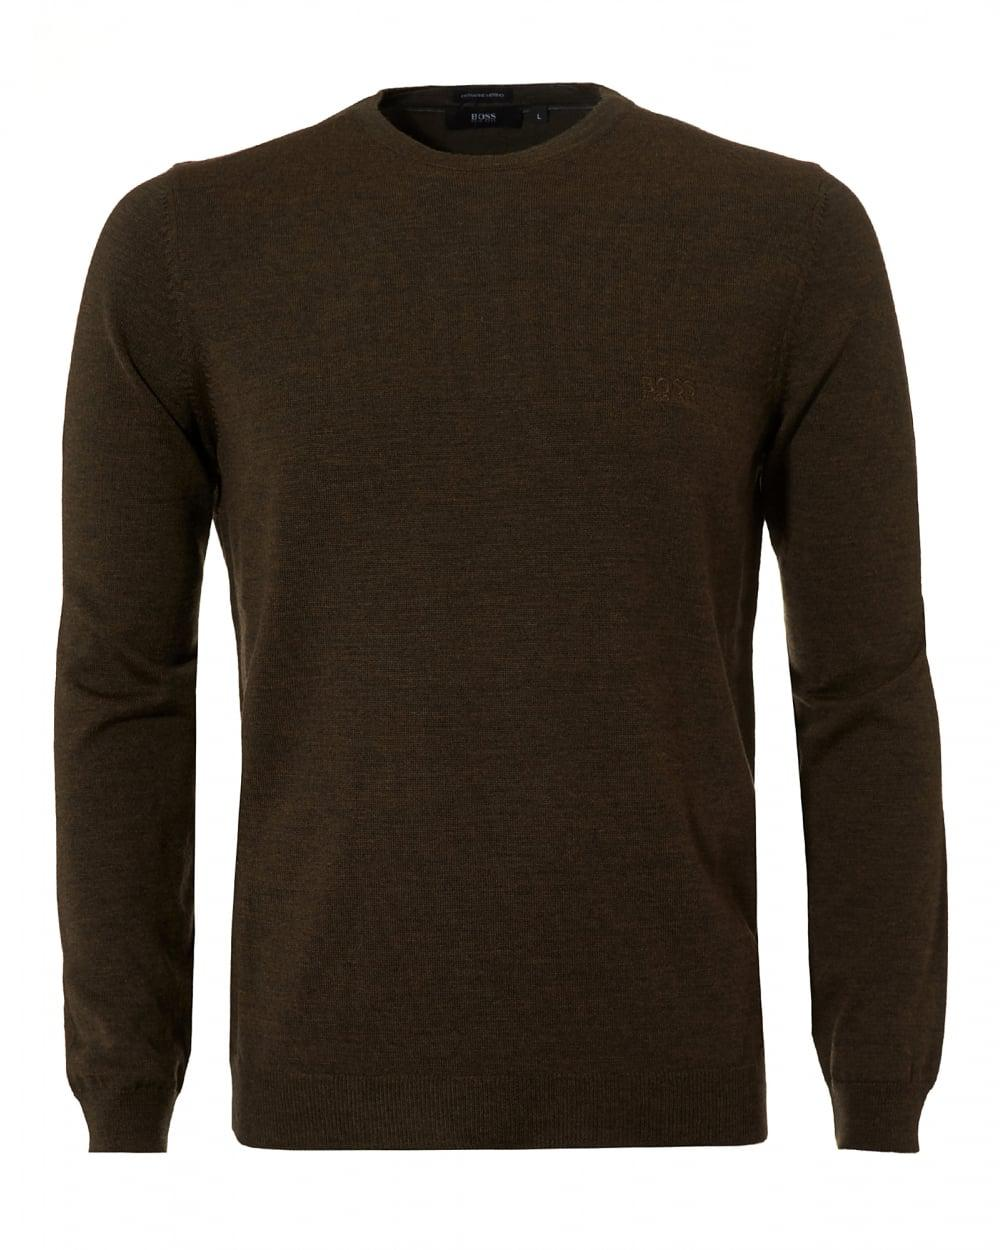 Find great deals on eBay for merino wool sweater. Shop with confidence.